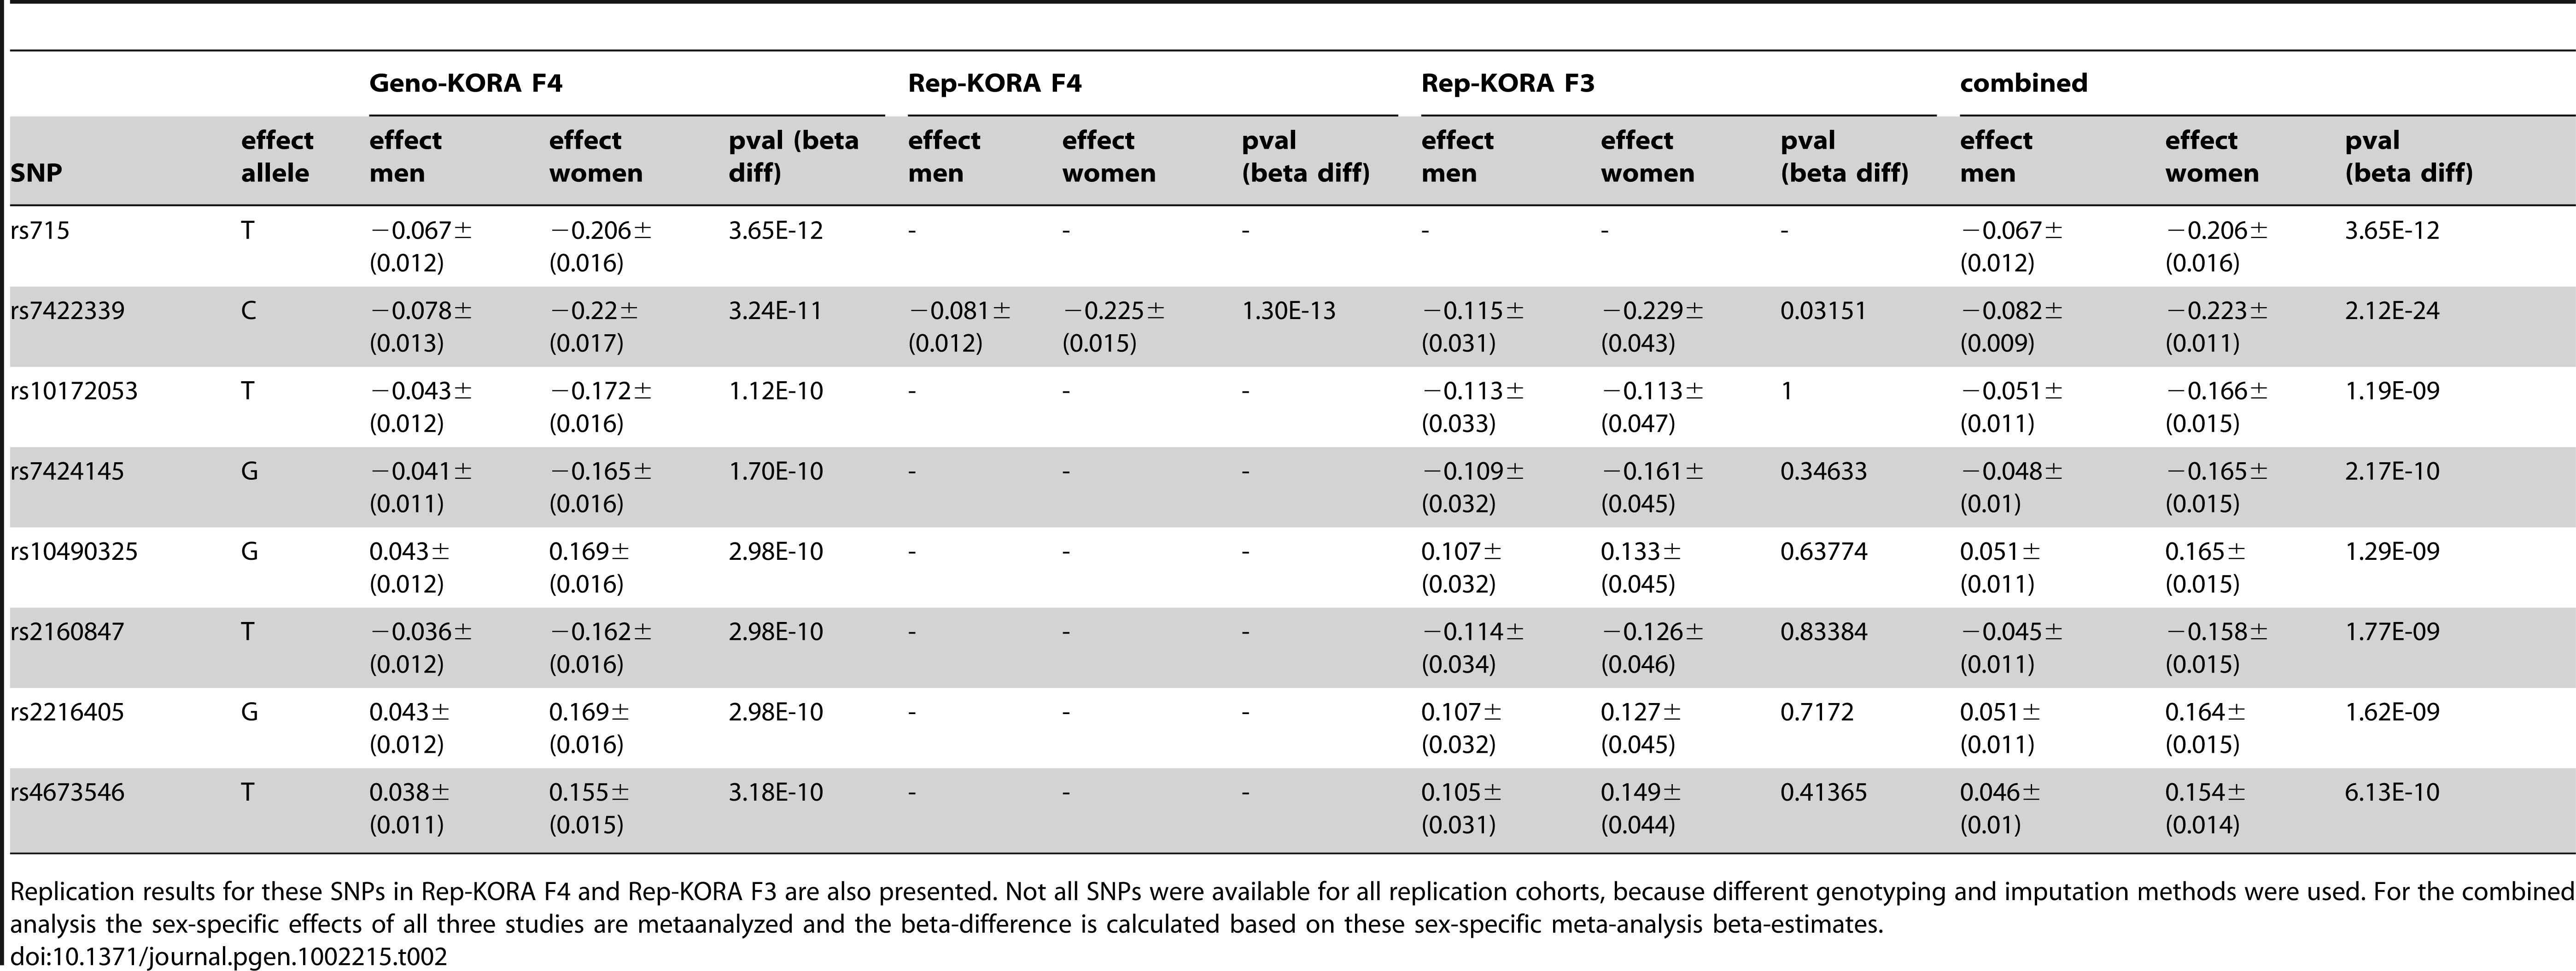 List of SNPs with significant differences in beta-estimates between men and women for association with glycine observed in Geno-KORA F4.